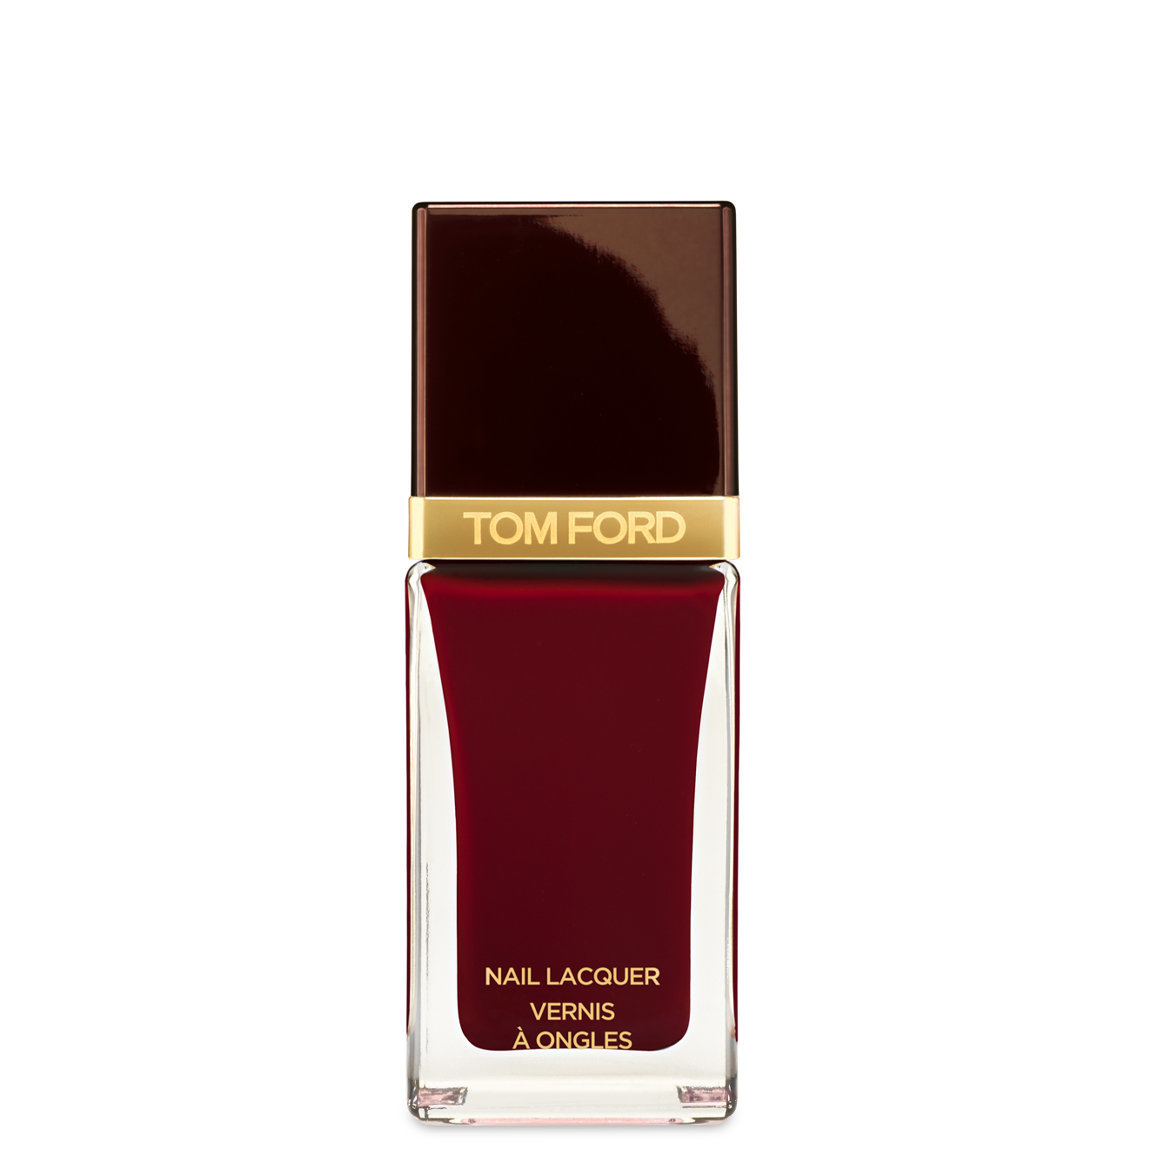 TOM FORD Nail Lacquer Bordeaux Lust alternative view 1.